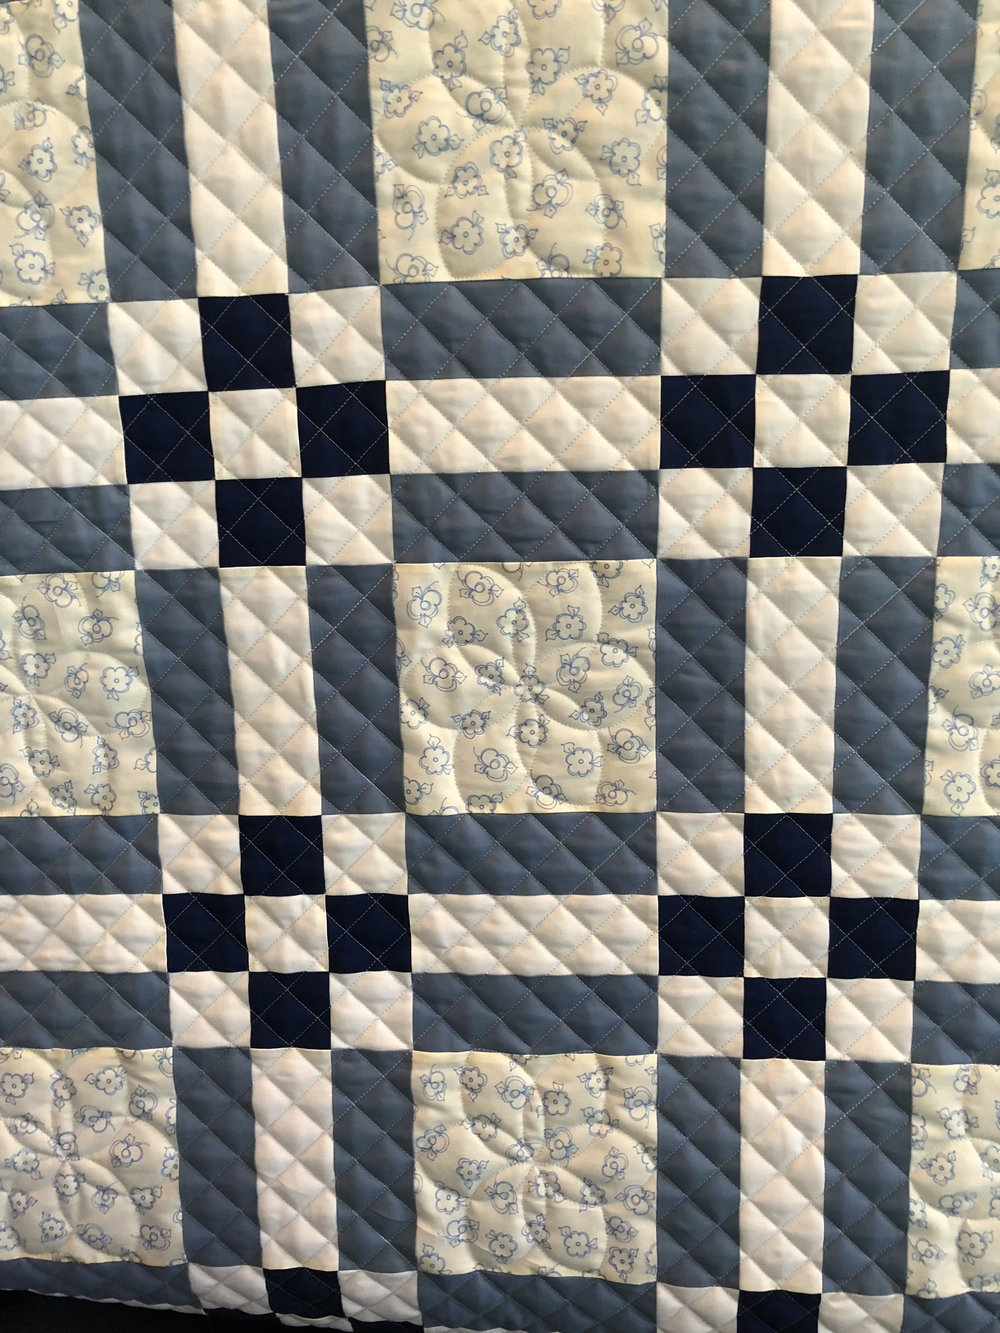 Kathy's Quilt: Featuring Megan Best's Cross Hatch design